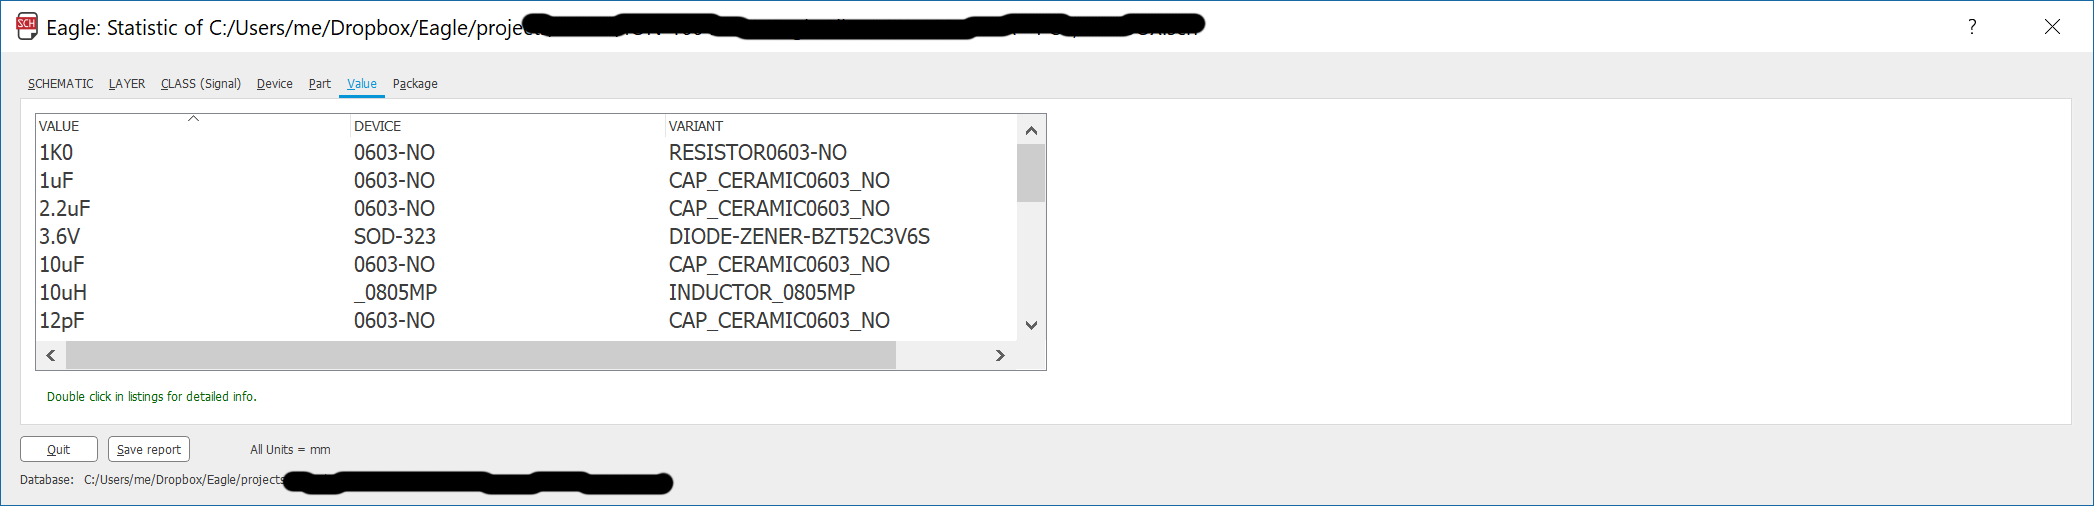 Possible System Font Scaling Bug in Eagle 9 0 0 - Autodesk Community